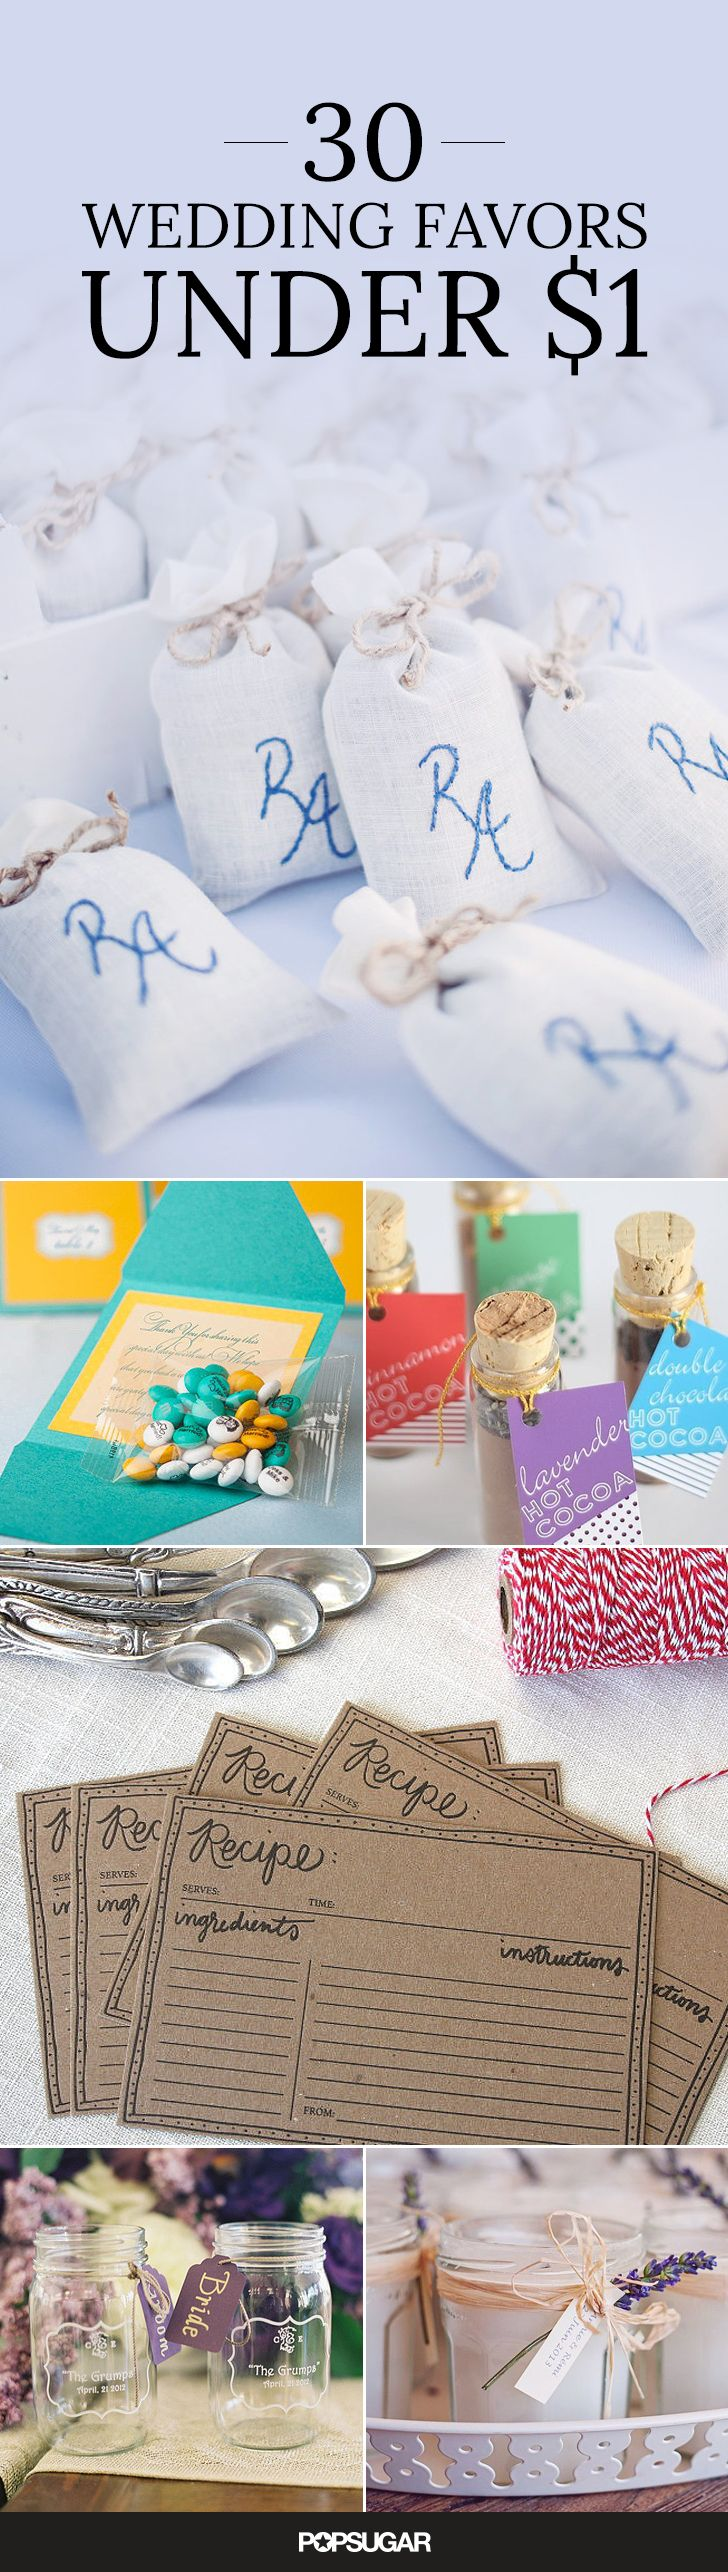 30 Wedding Favors You Won't Believe Cost Under $1--maybe number 30